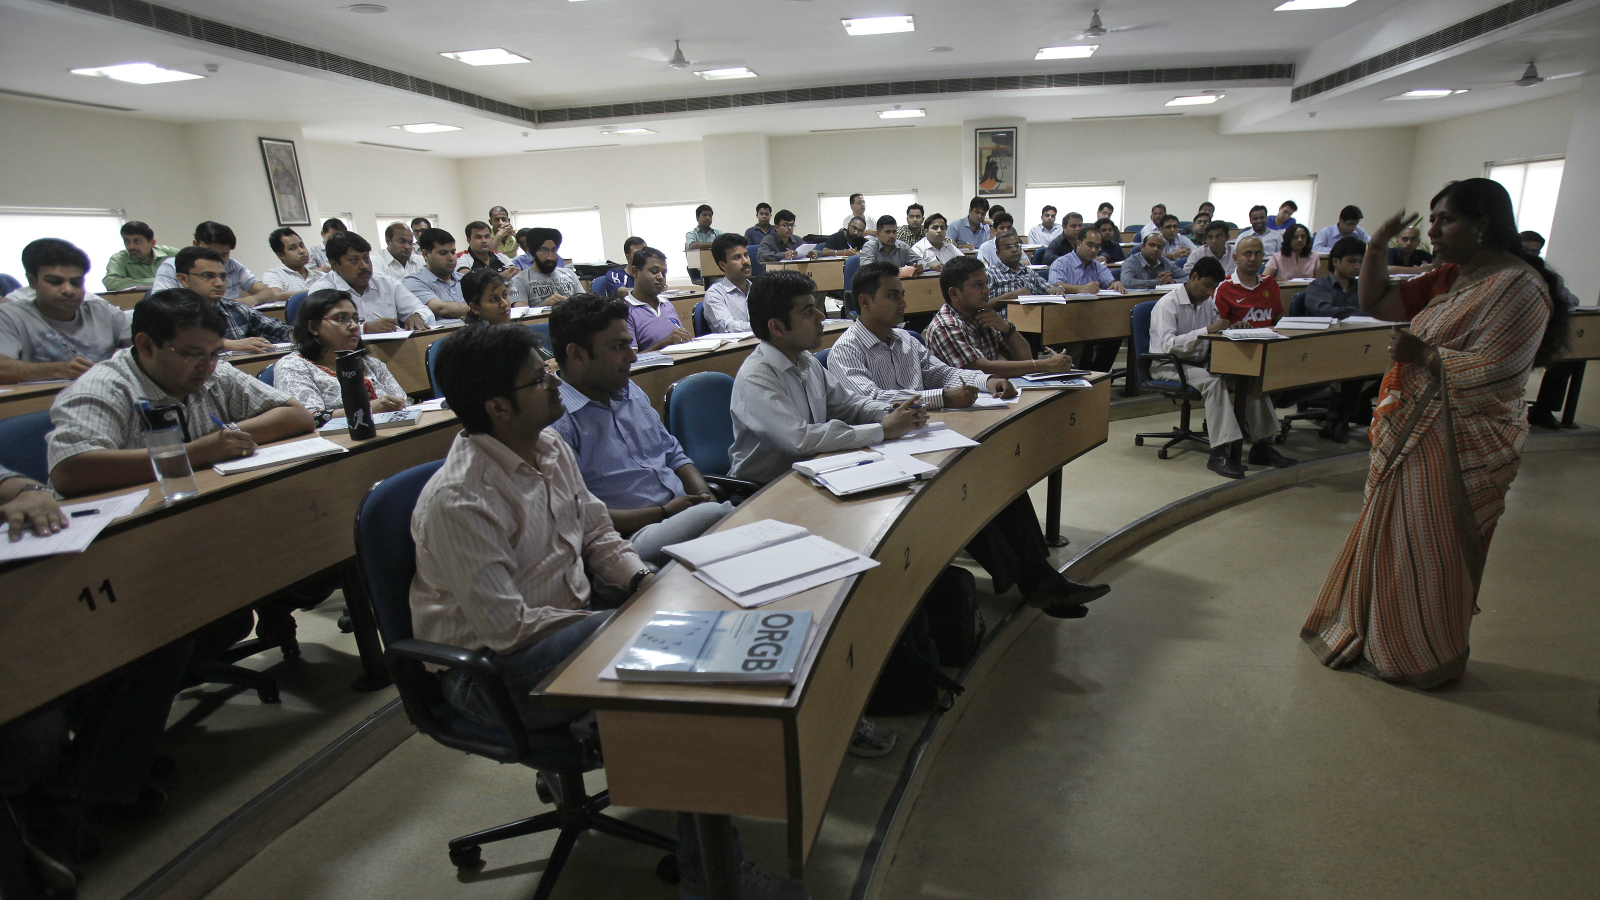 Master of Business Administration (MBA) students attend a lecture at a classroom at the Management Development Institute (MDI) in Gurgaon, on the outskirts of New Delhi May 2, 2012. Fiscal constraints have increased the Indian government's reliance on private education institutes leading to a proliferation of private colleges like MDI. The number of management institutes has more than trebled to around 4000 in the last five years, of which at least two-thirds are estimated to be private colleges. Picture taken May 2, 2012. Master of Business Administration (MBA) students attend a lecture at a classroom at the Management Development Institute (MDI) in Gurgaon, on the outskirts of New Delhi May 2, 2012. Fiscal constraints have increased the Indian government's reliance on private education institutes leading to a proliferation of private colleges like MDI. The number of management institutes has more than trebled to around 4000 in the last five years, of which at least two-thirds are estimated to be private colleges. Picture taken May 2, 2012. REUTERS/Adnan Abidi